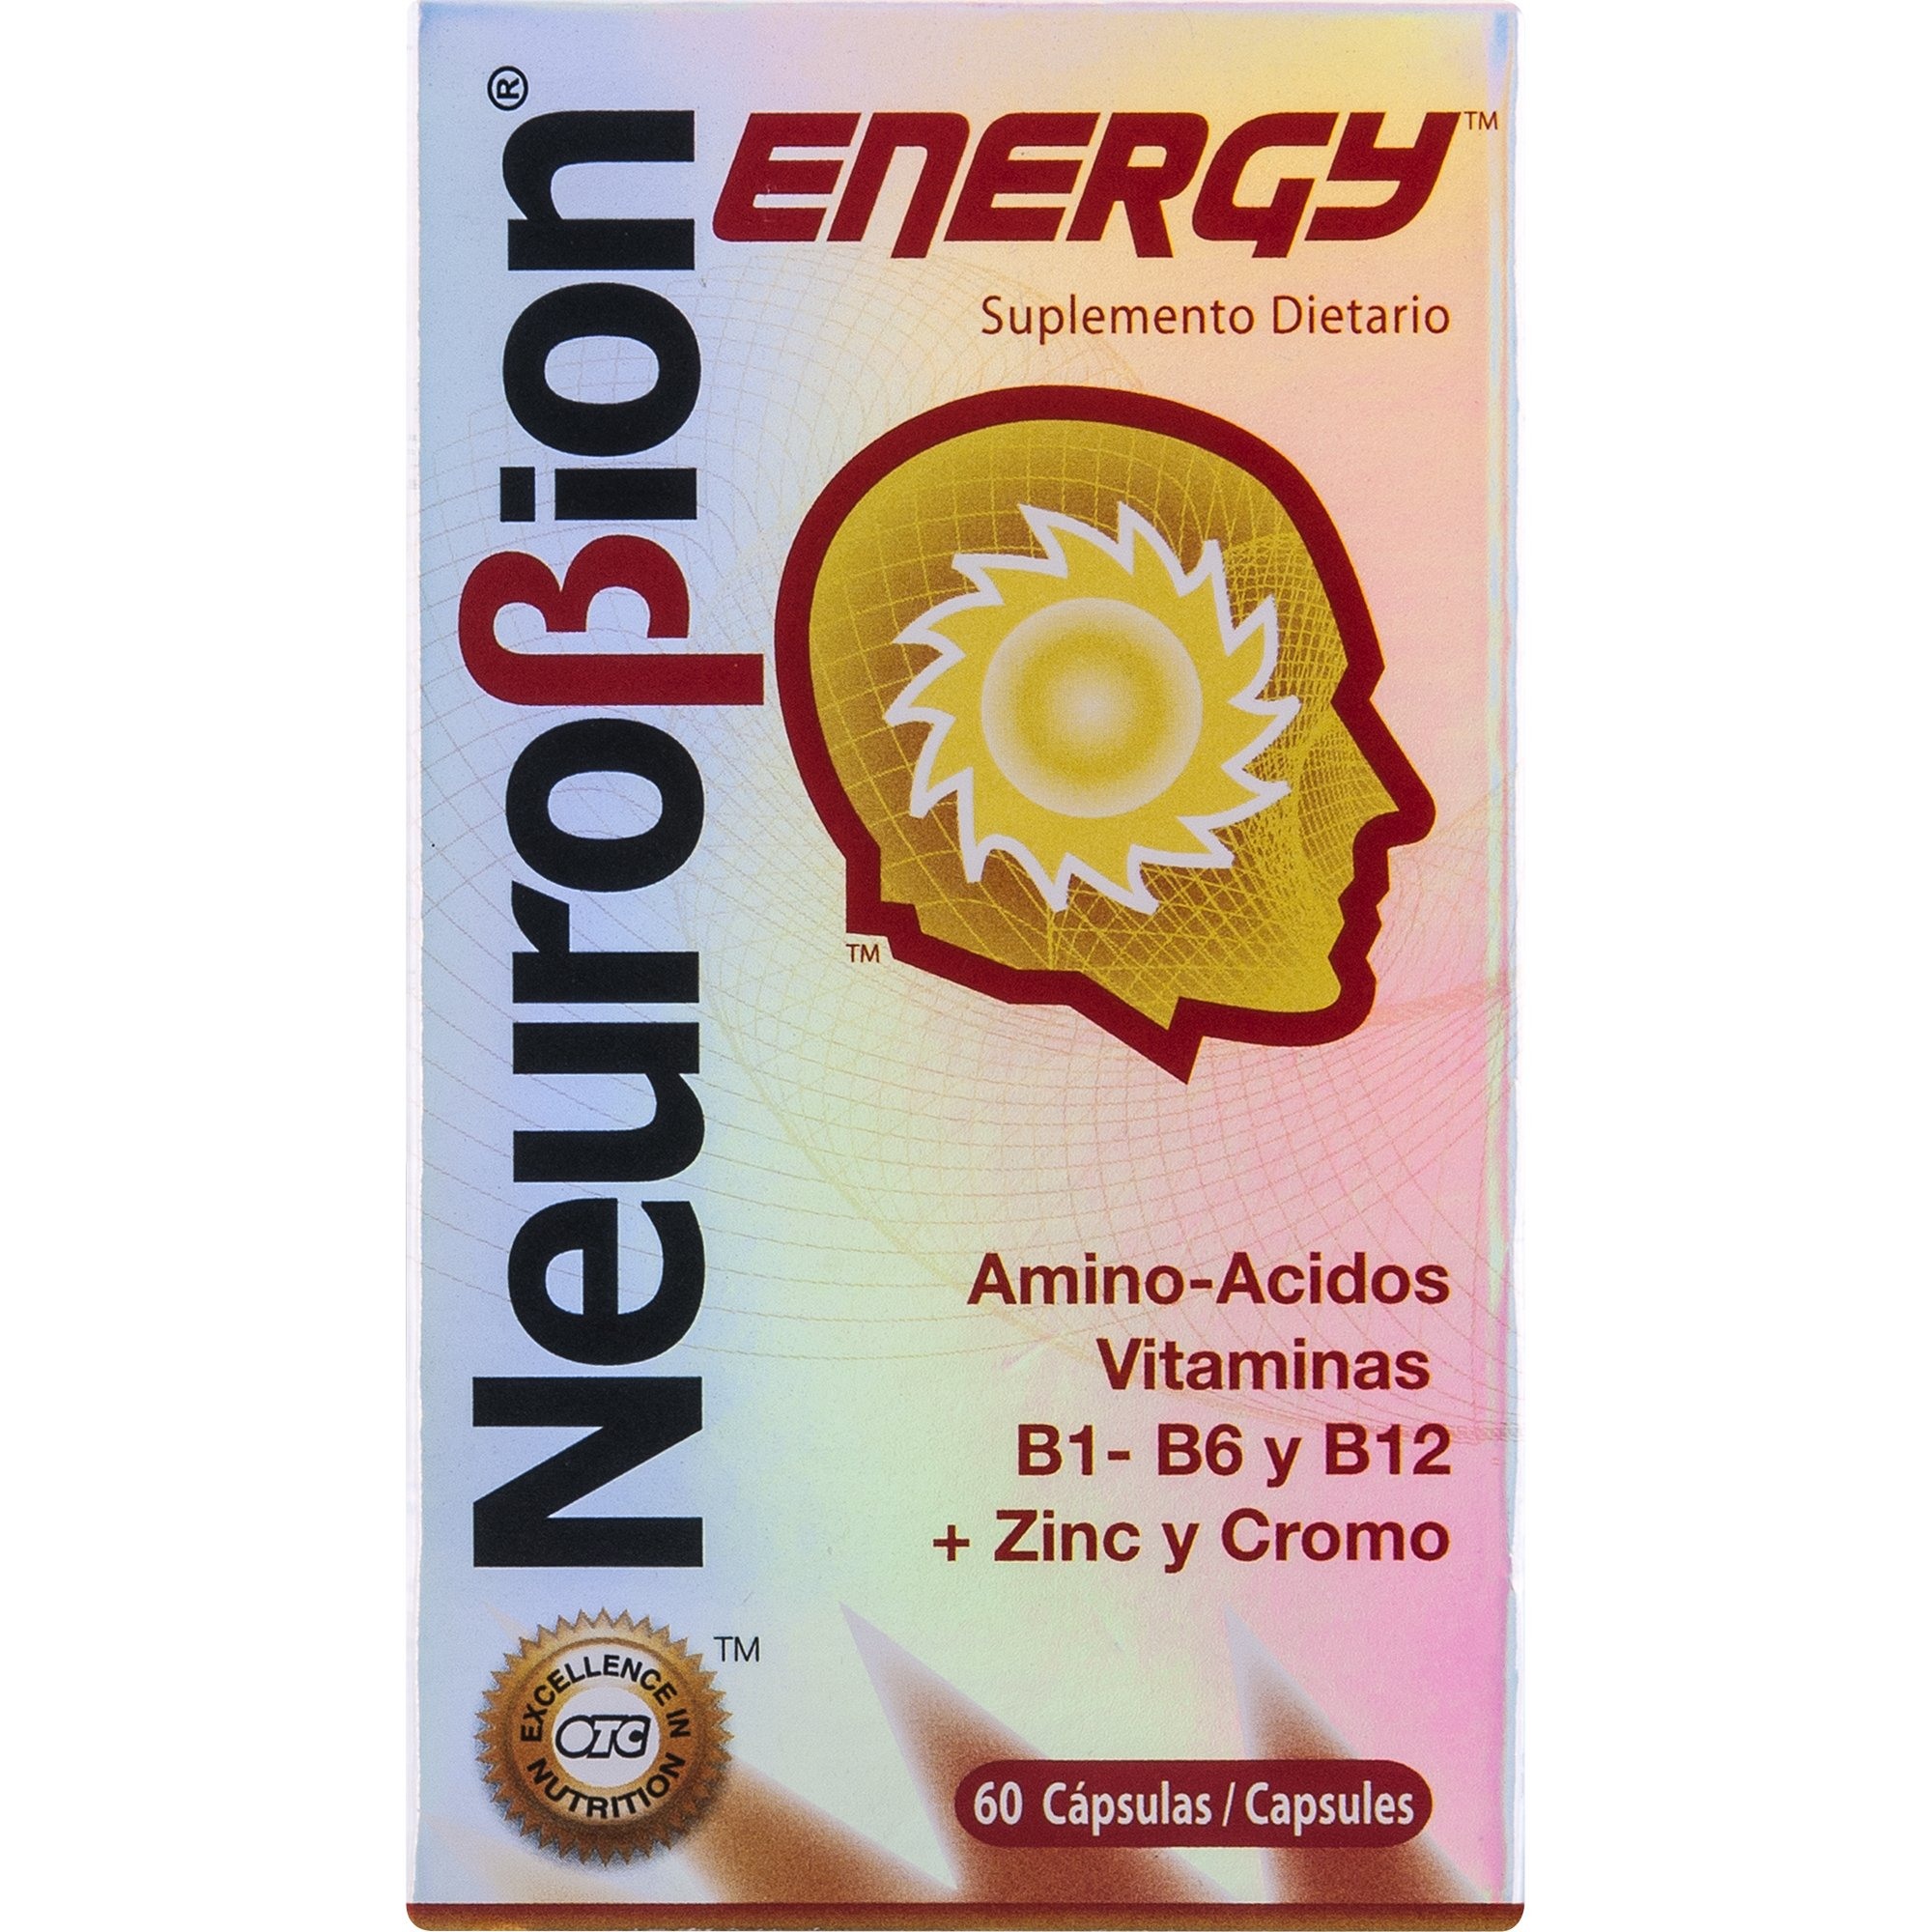 Neurobion Energy 60 Caps. May Help to Increase Energy and Reduce Stress.